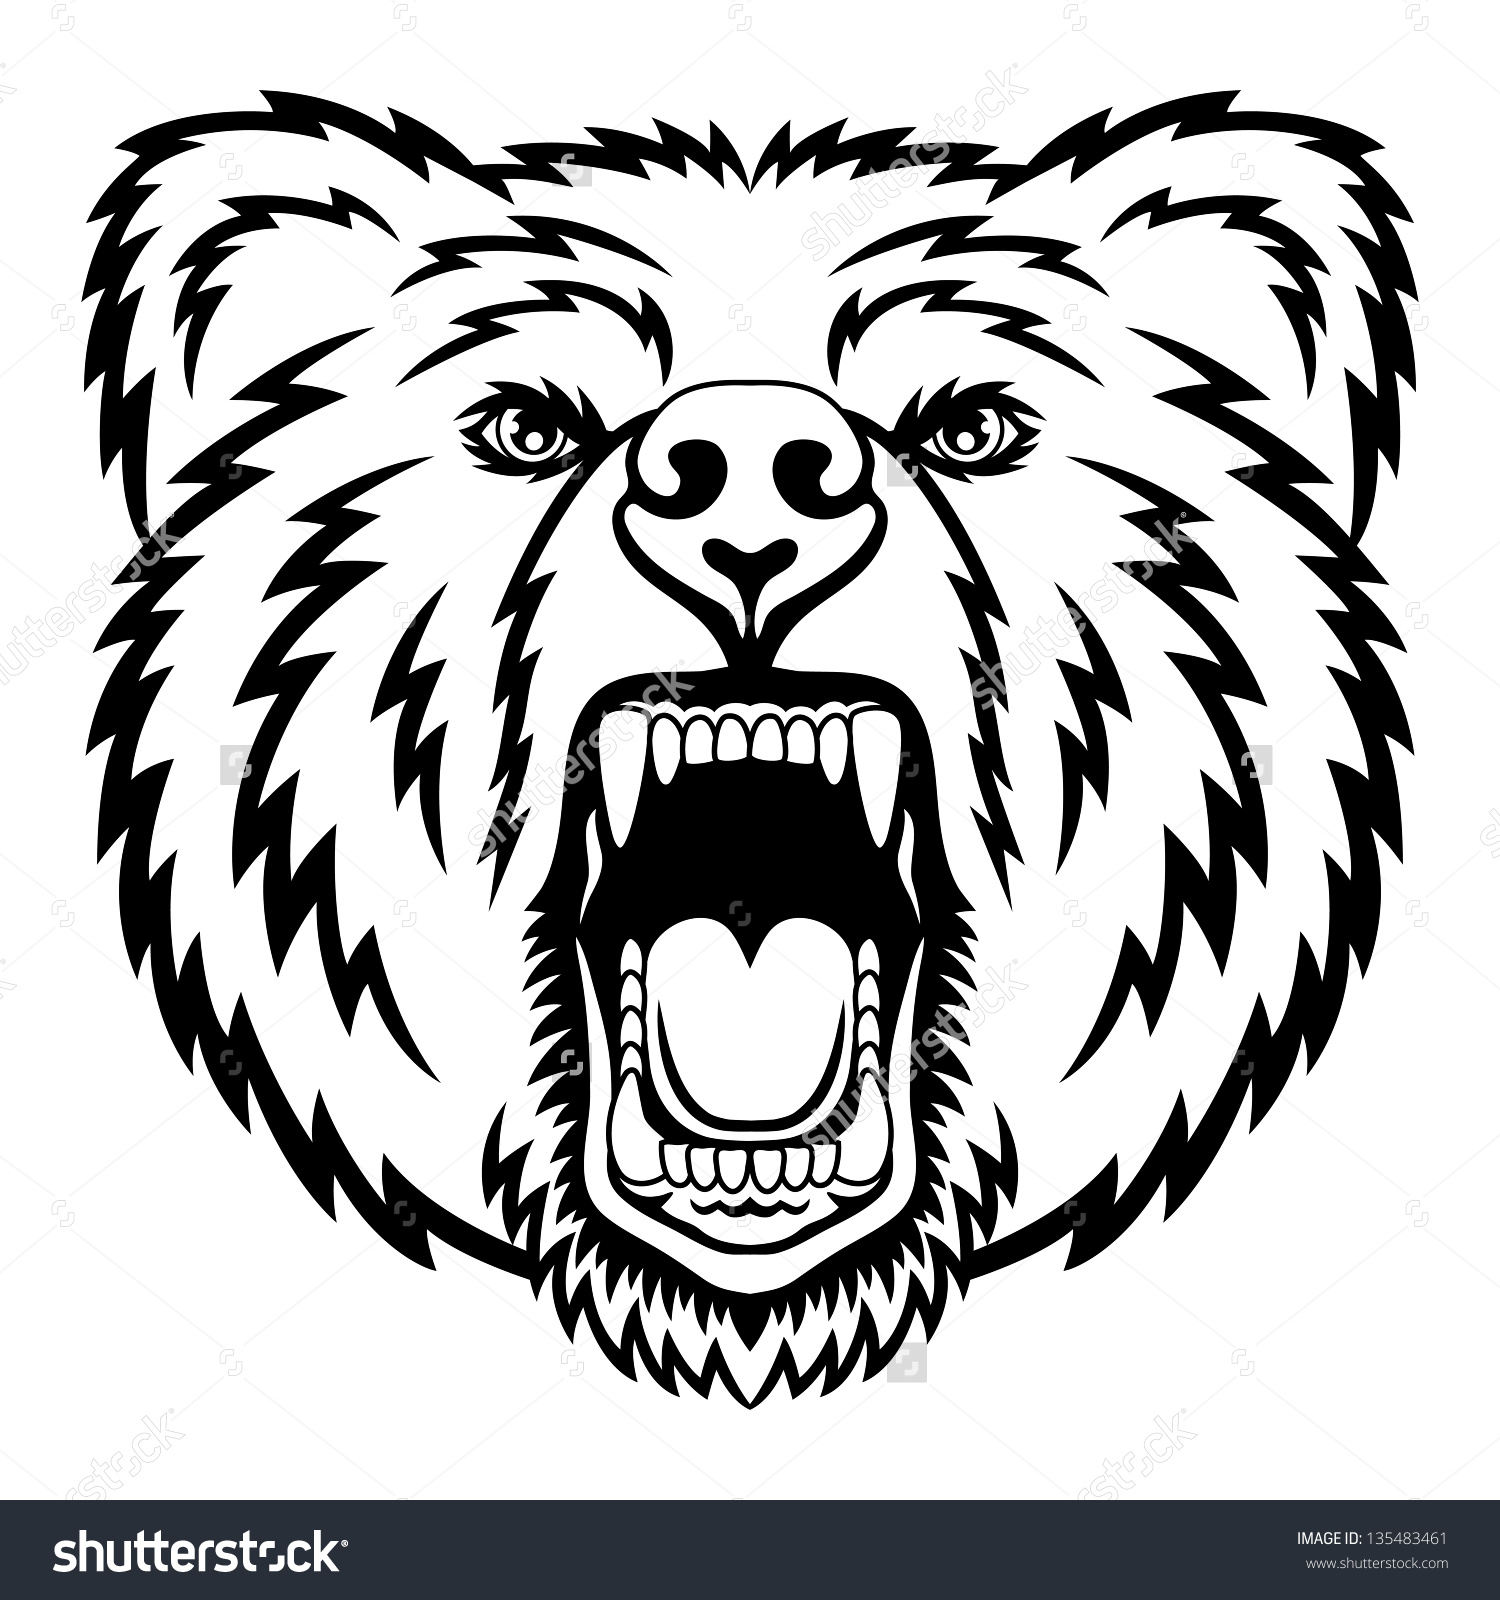 Bear Head Logo This Vector Illustration Stock Vector 135483461.